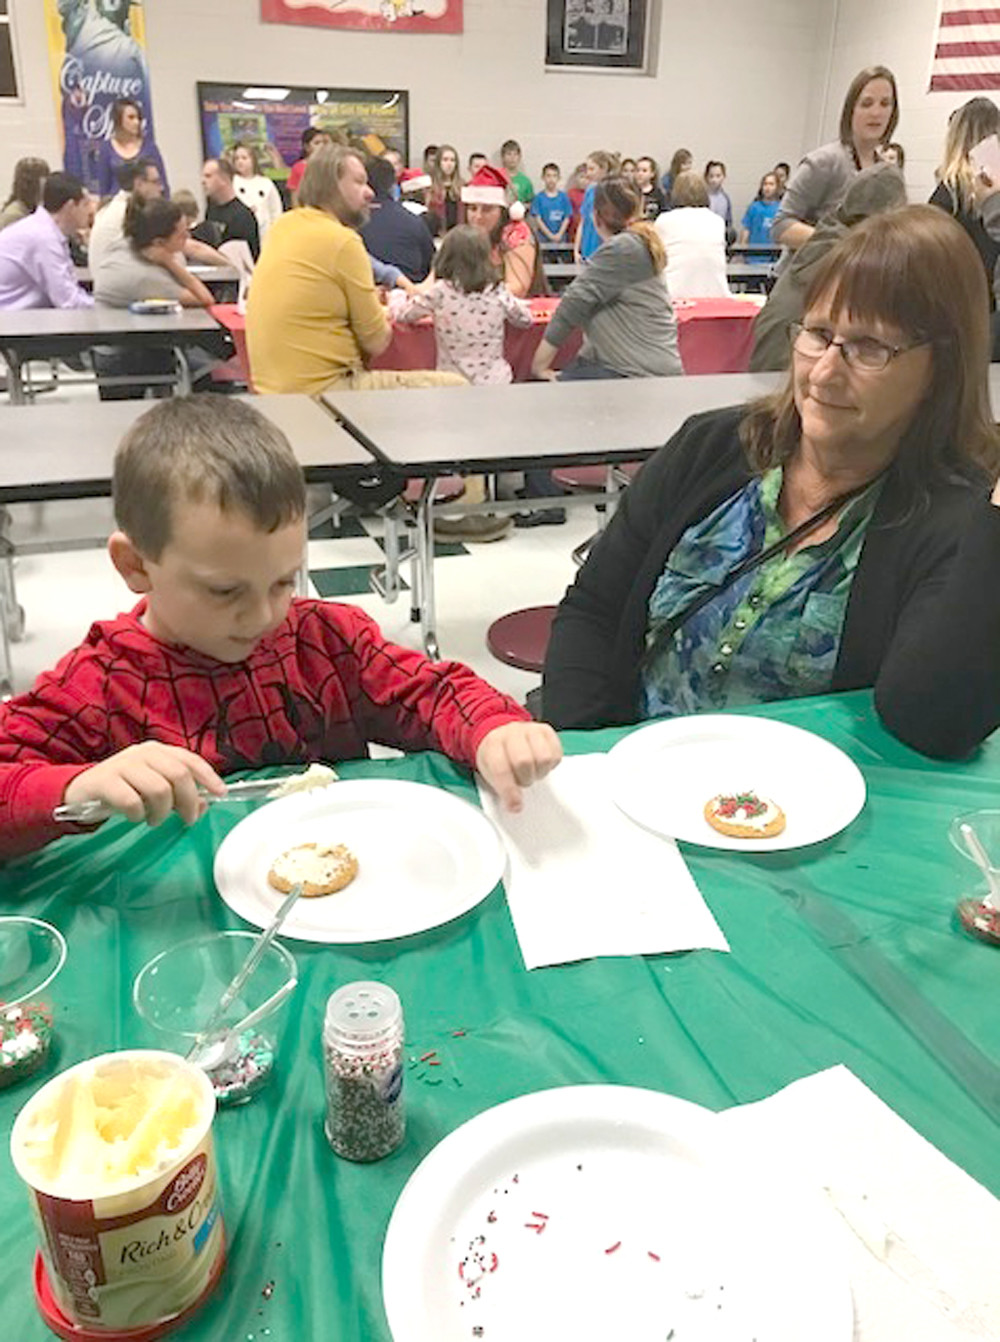 JACKERY JOHNSON and his grandmother decorate cookies during a recent family Christmas event at Oak Grove Elementary.